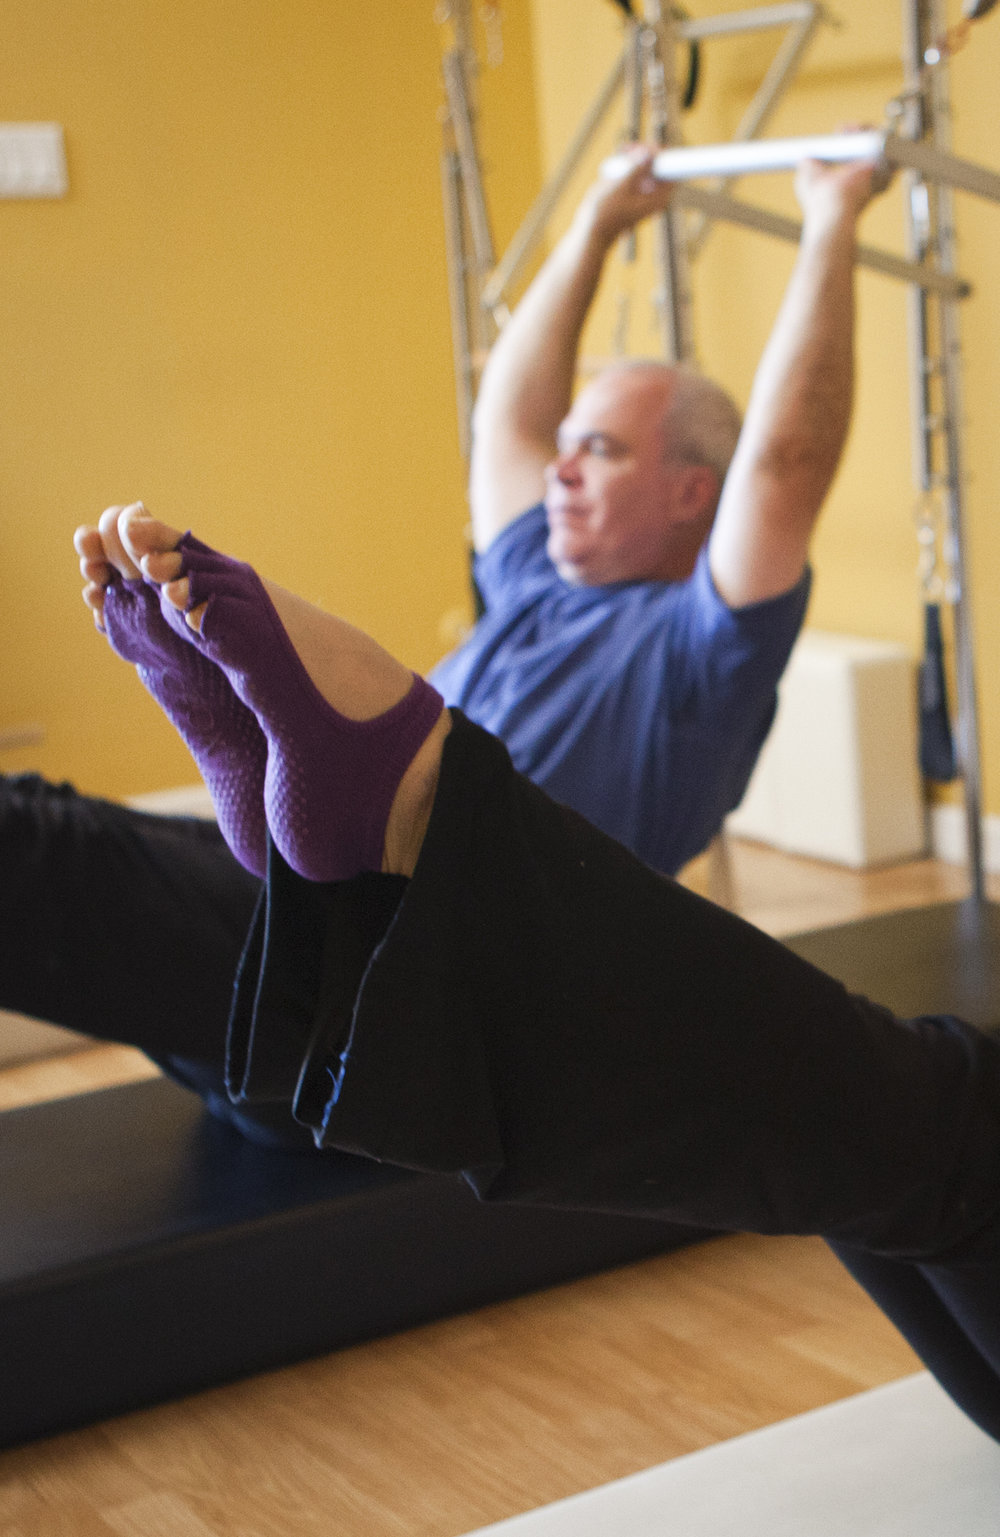 20-pilates-old-location.jpg